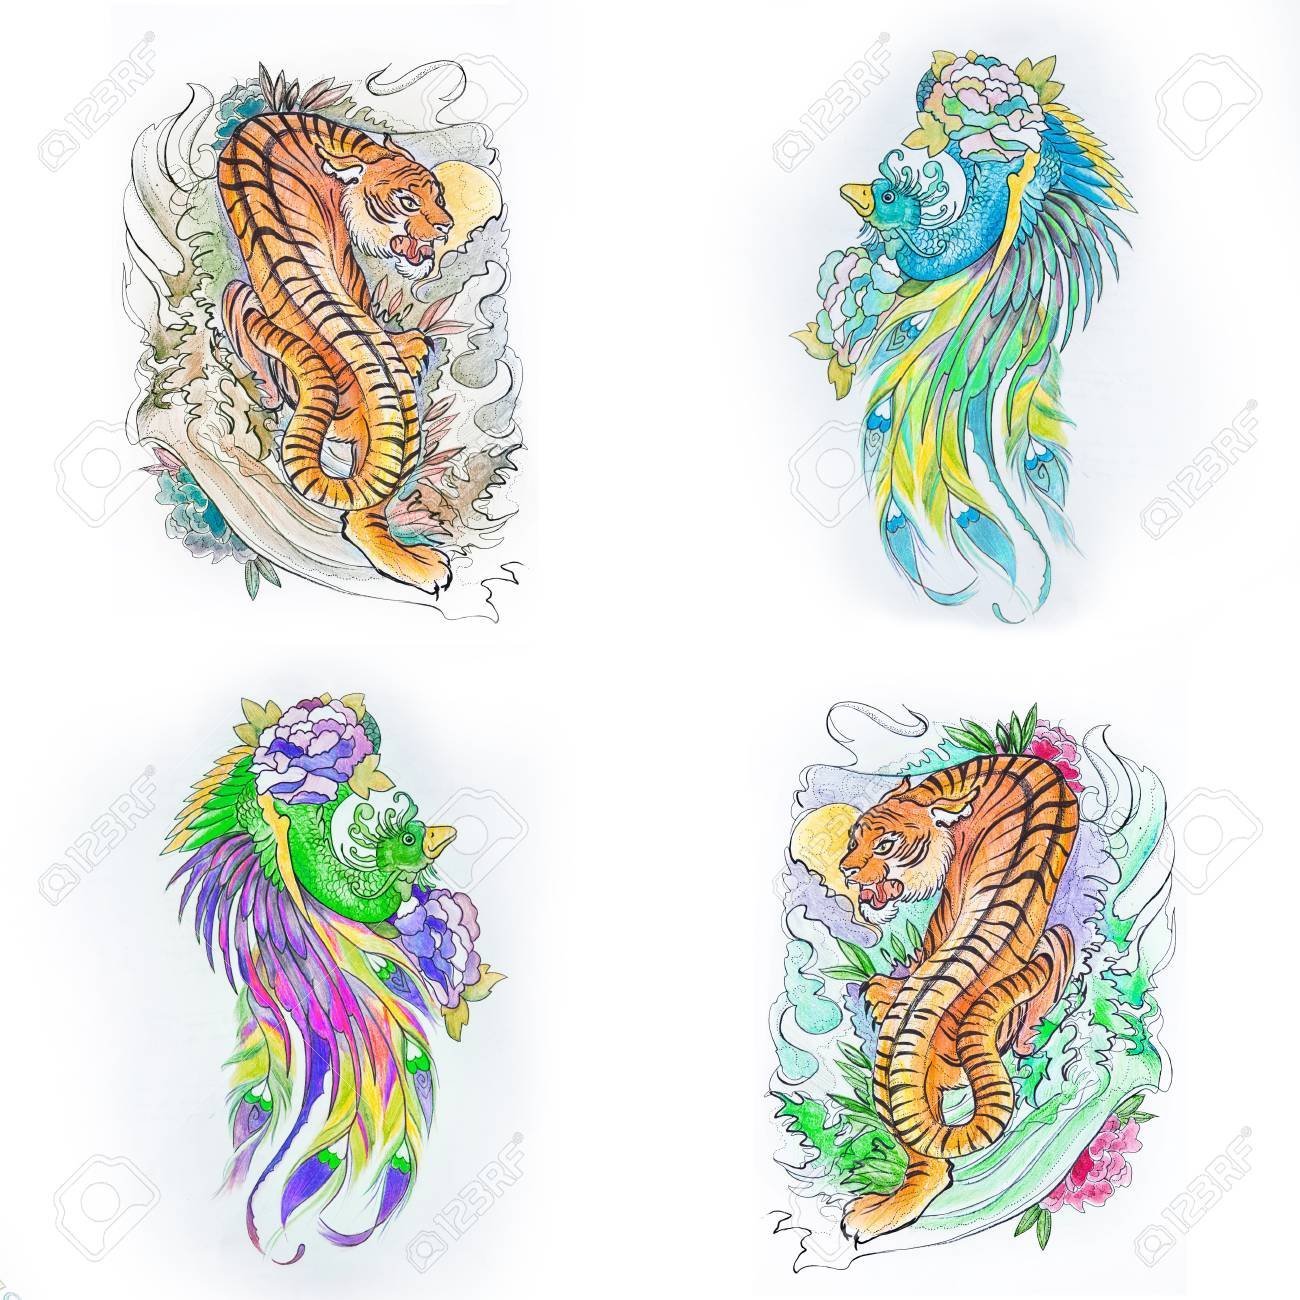 Set of sketches of a multicolored tiger and peacock on a white background stock photo